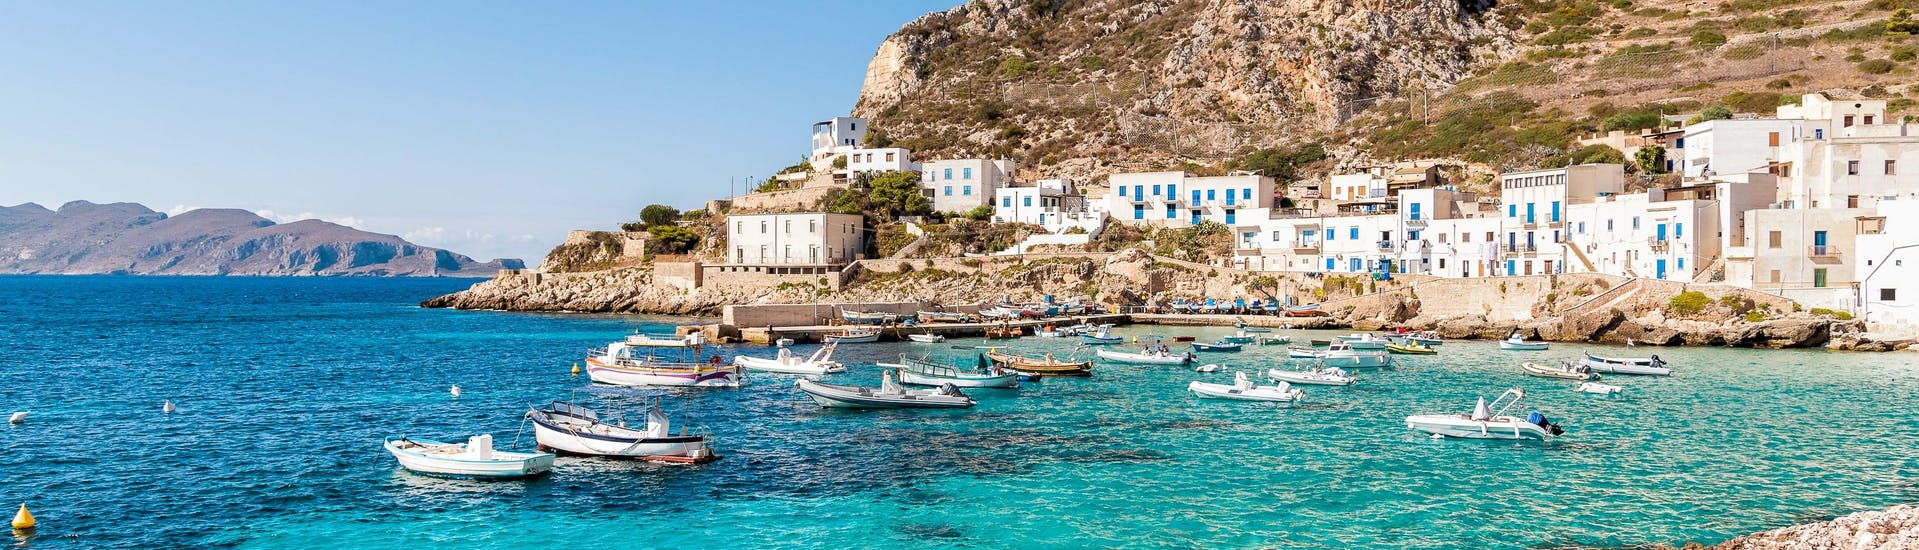 A view of the coastline of the island of Levanzo that visitors can see on a boat trip to the Egadi Islands in Sicily.